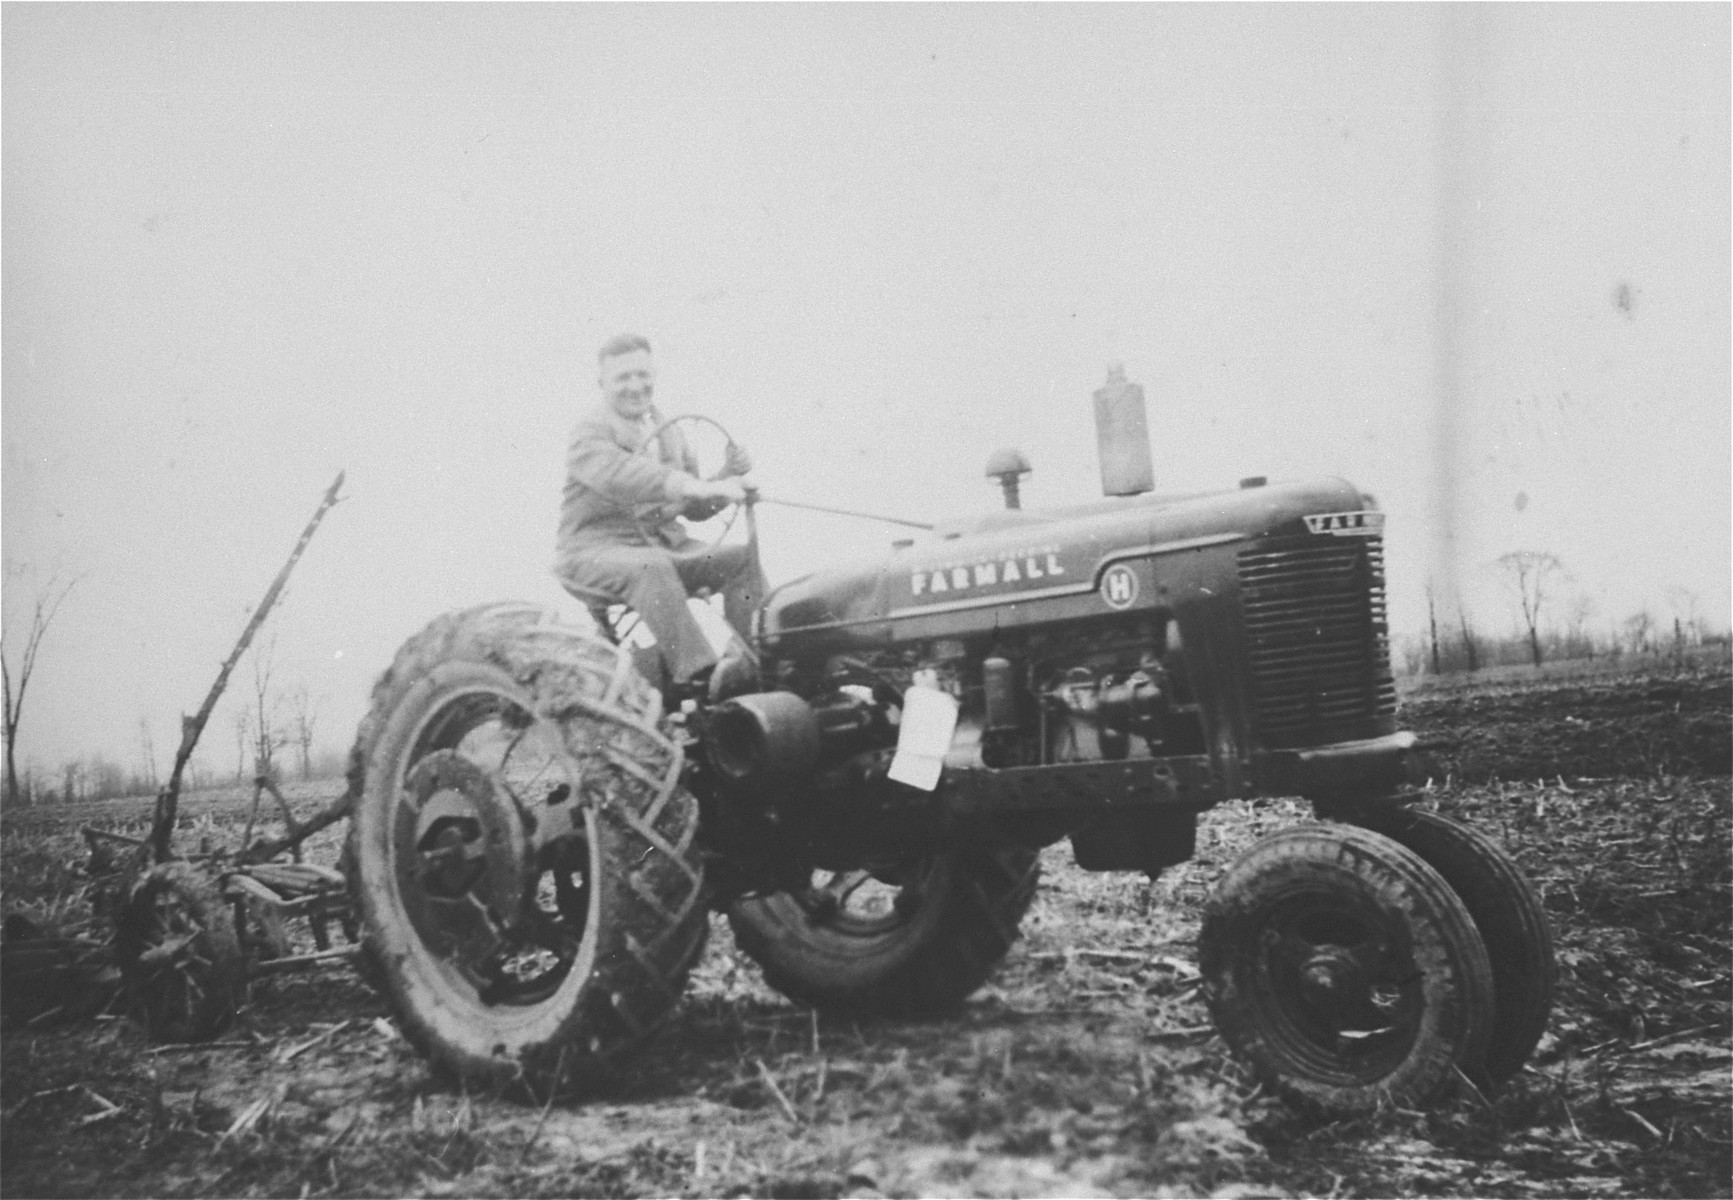 Slovak-Jewish refugee Nandor Muller driving a tractor he bought to work his farm in southern Ontario.